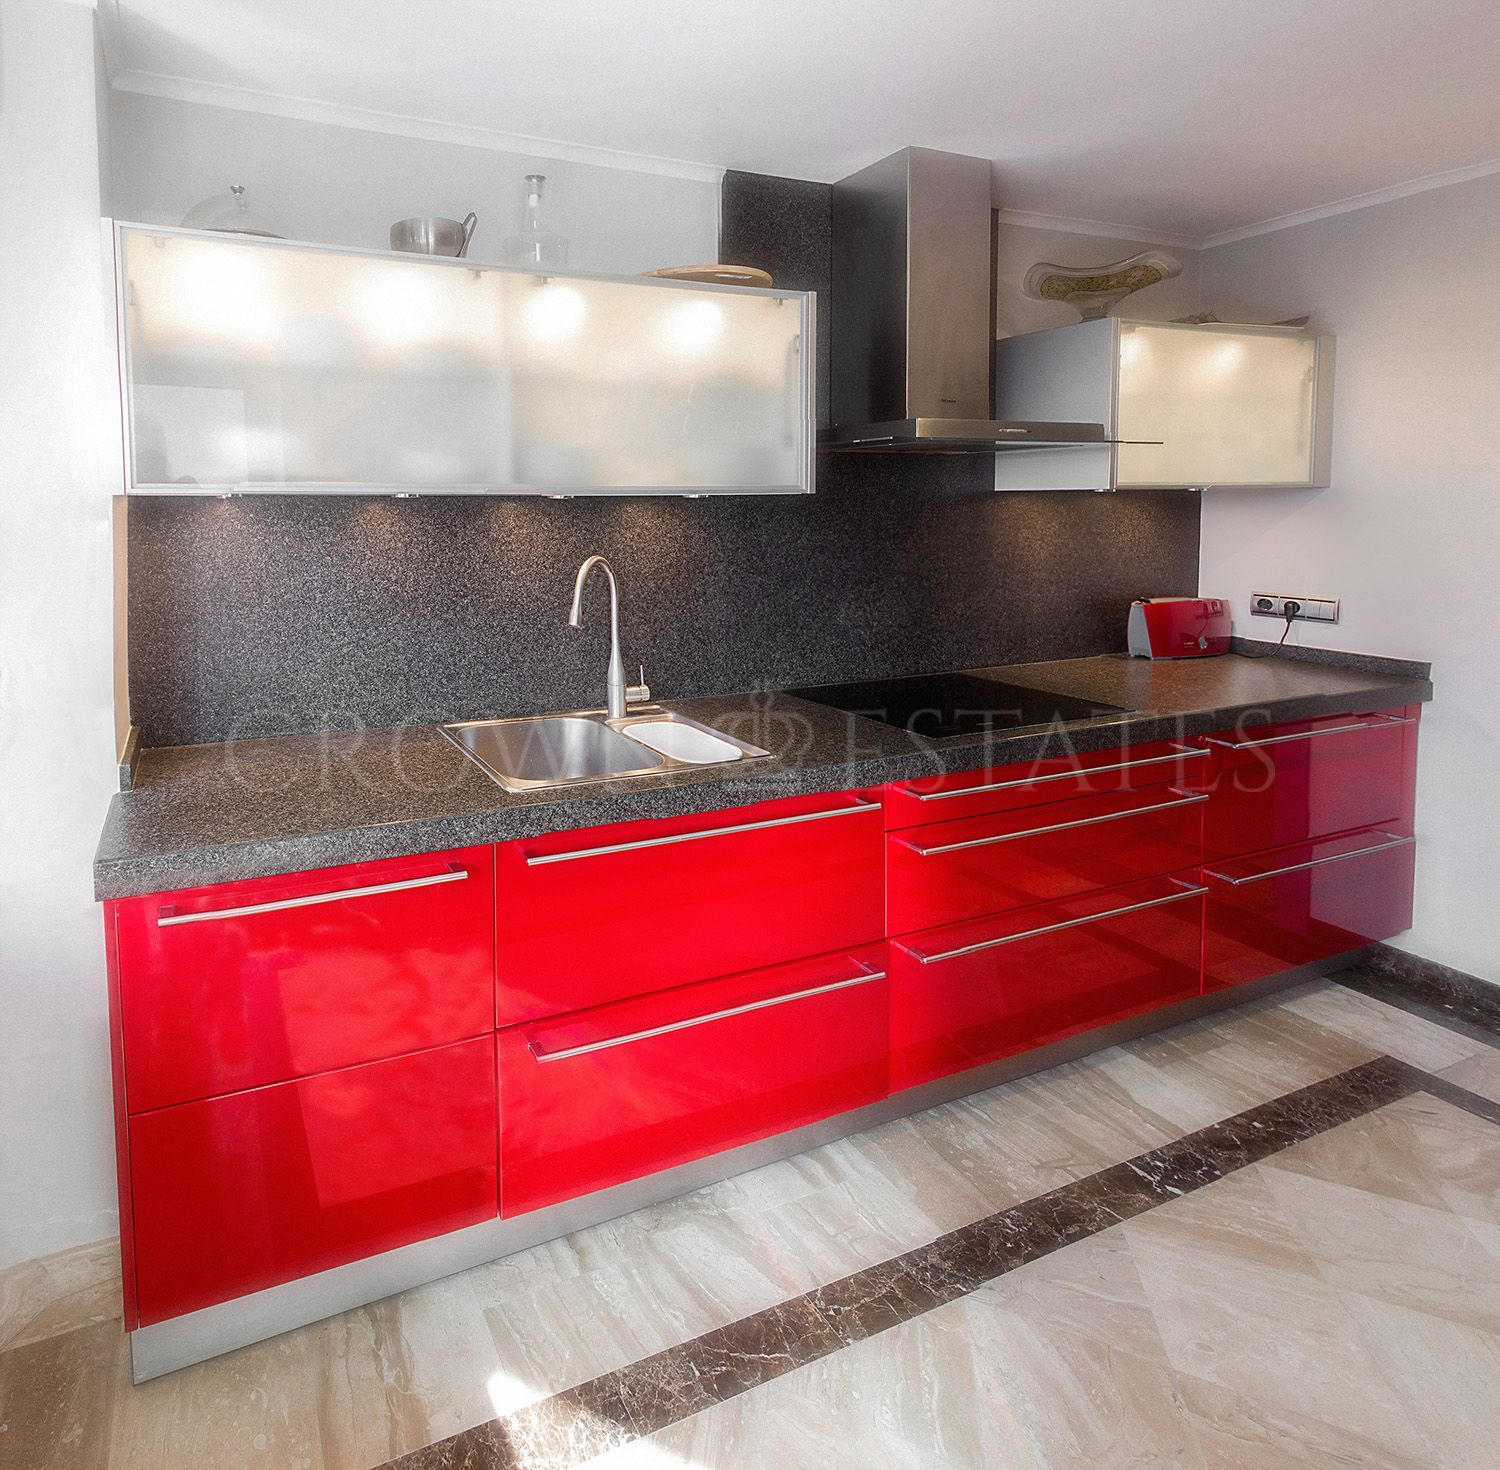 Luxury two bedroom apartment situated in gated urbanization near Puerto Banus